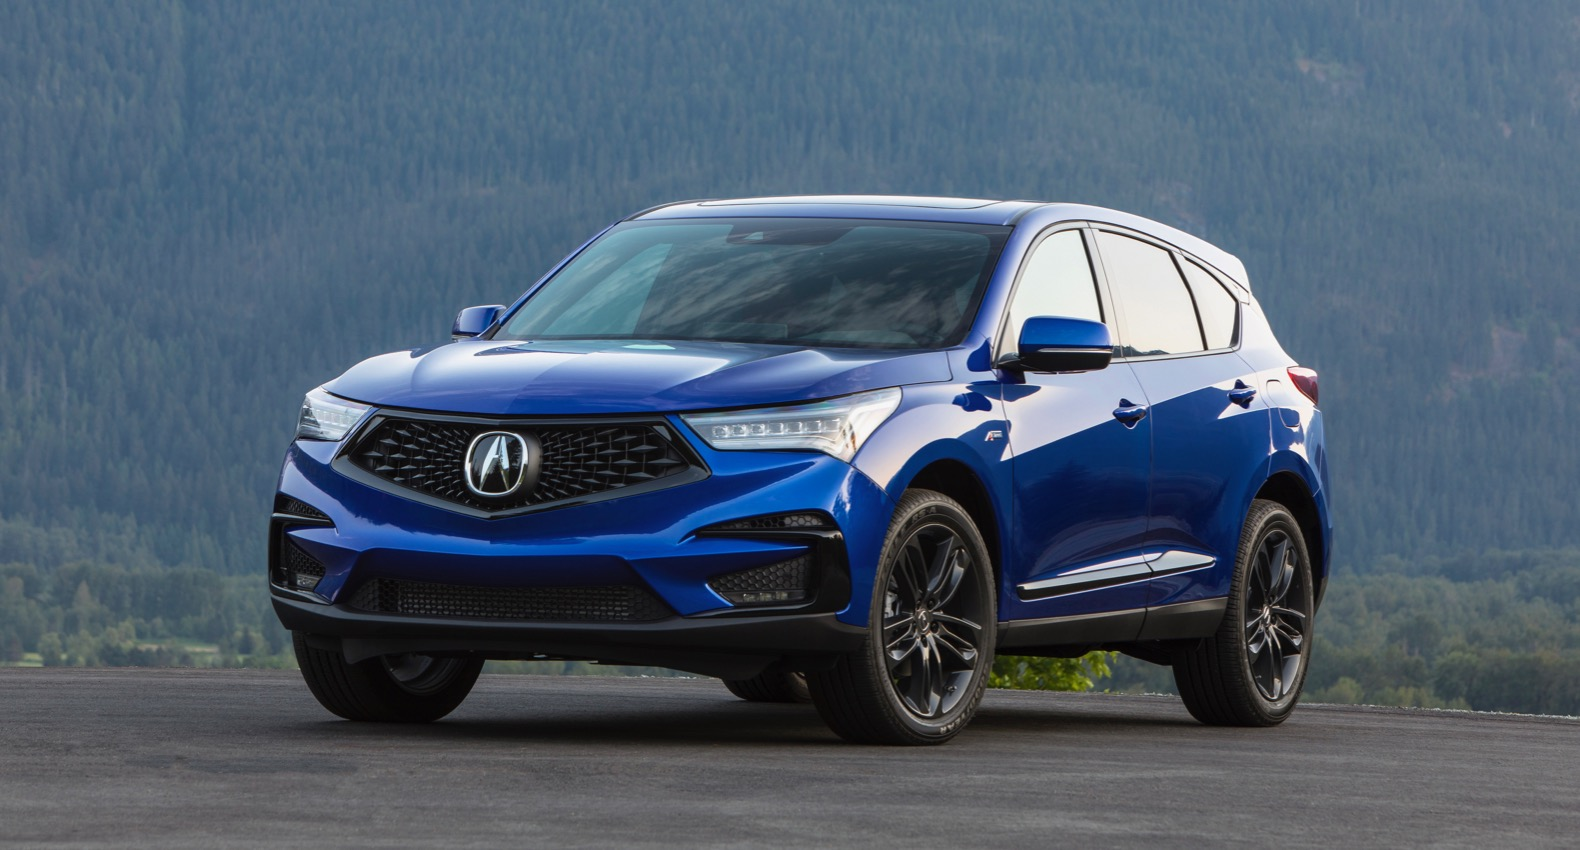 2020 acura rdx priced at  38 595